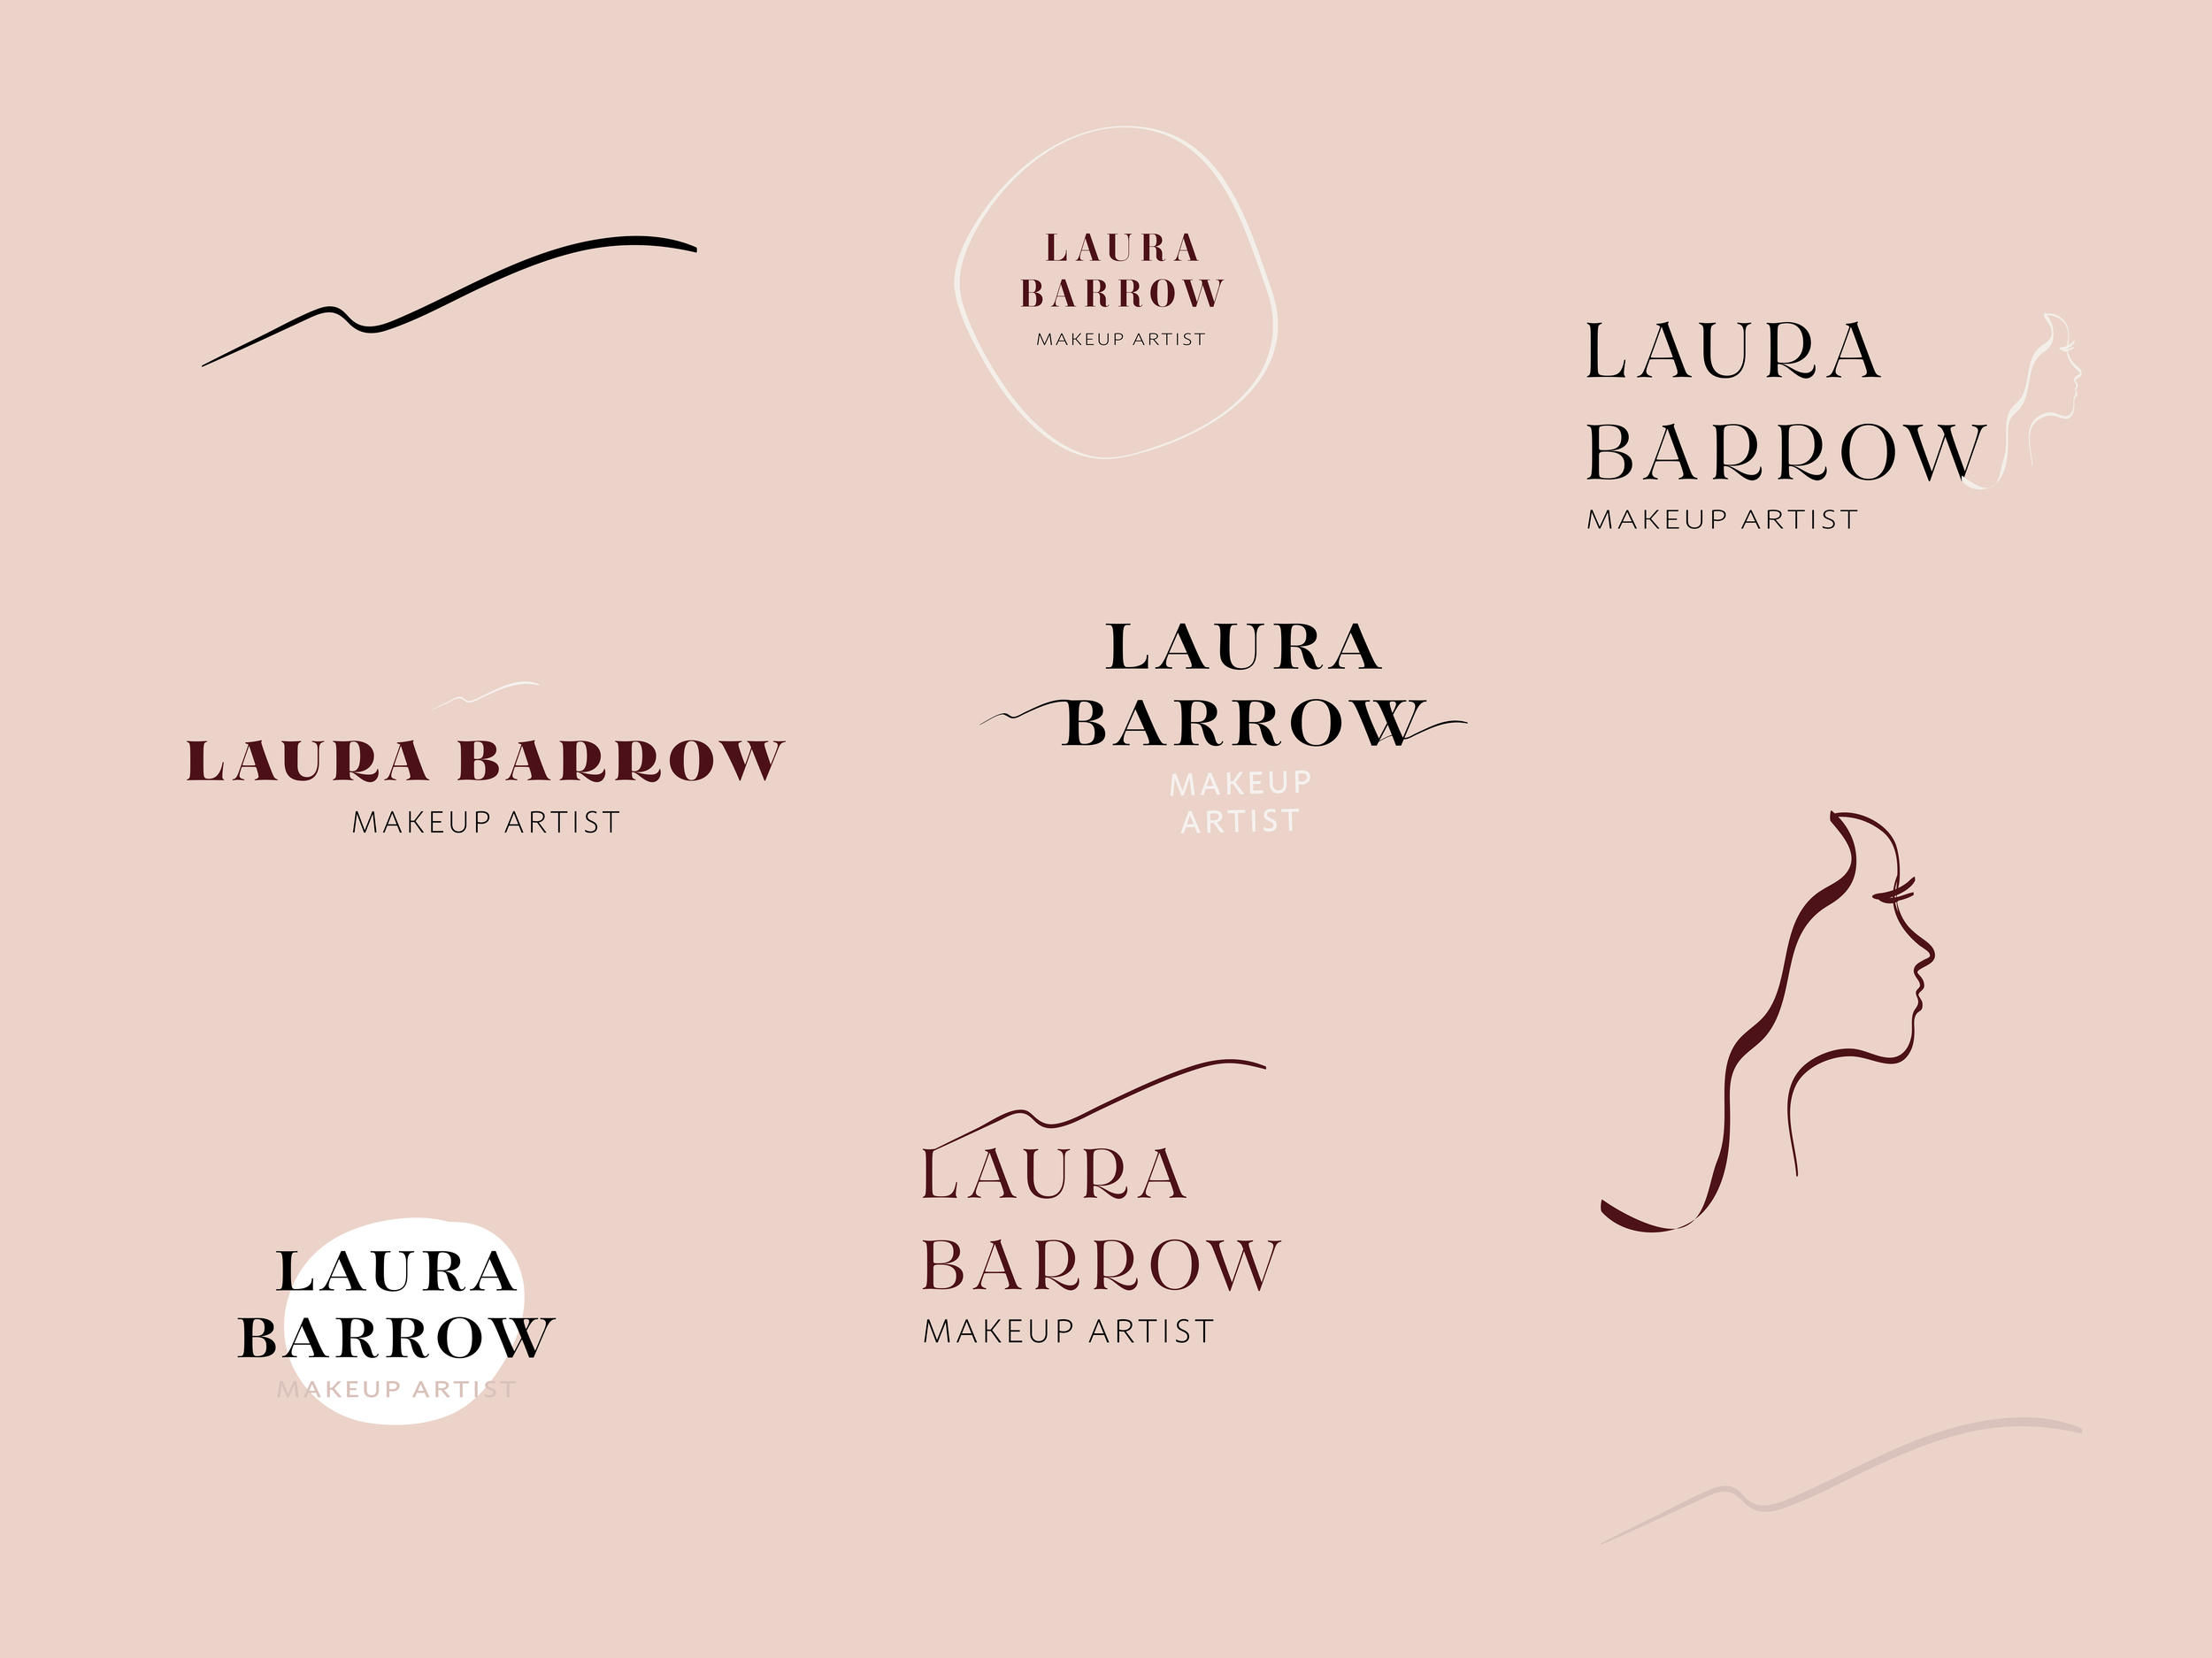 Keynote-Portfolio-Laura-Barrow-Make-Up-FINAL_04.png